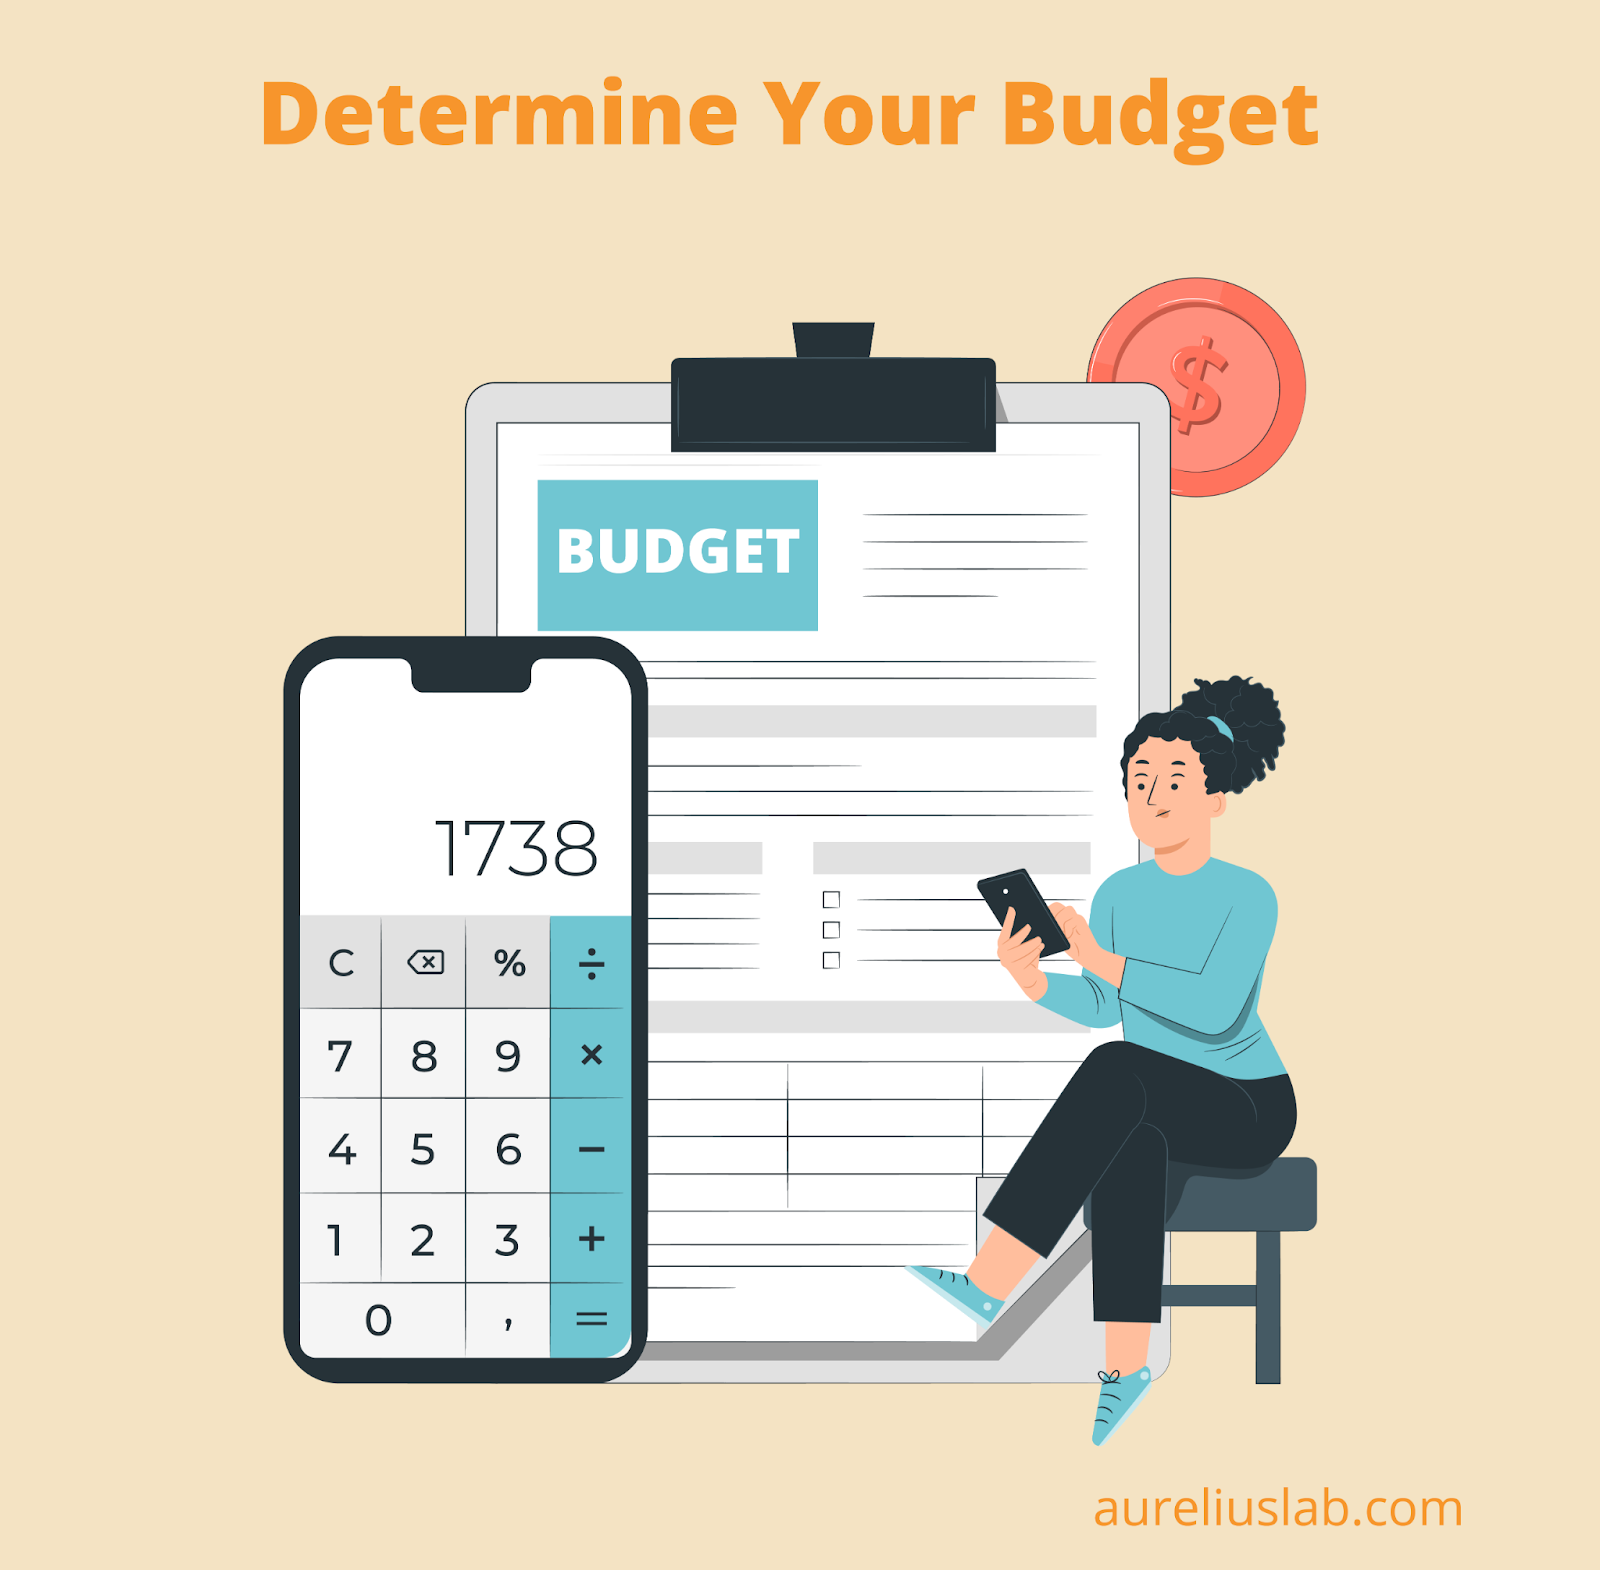 budget is an essential part of research planning